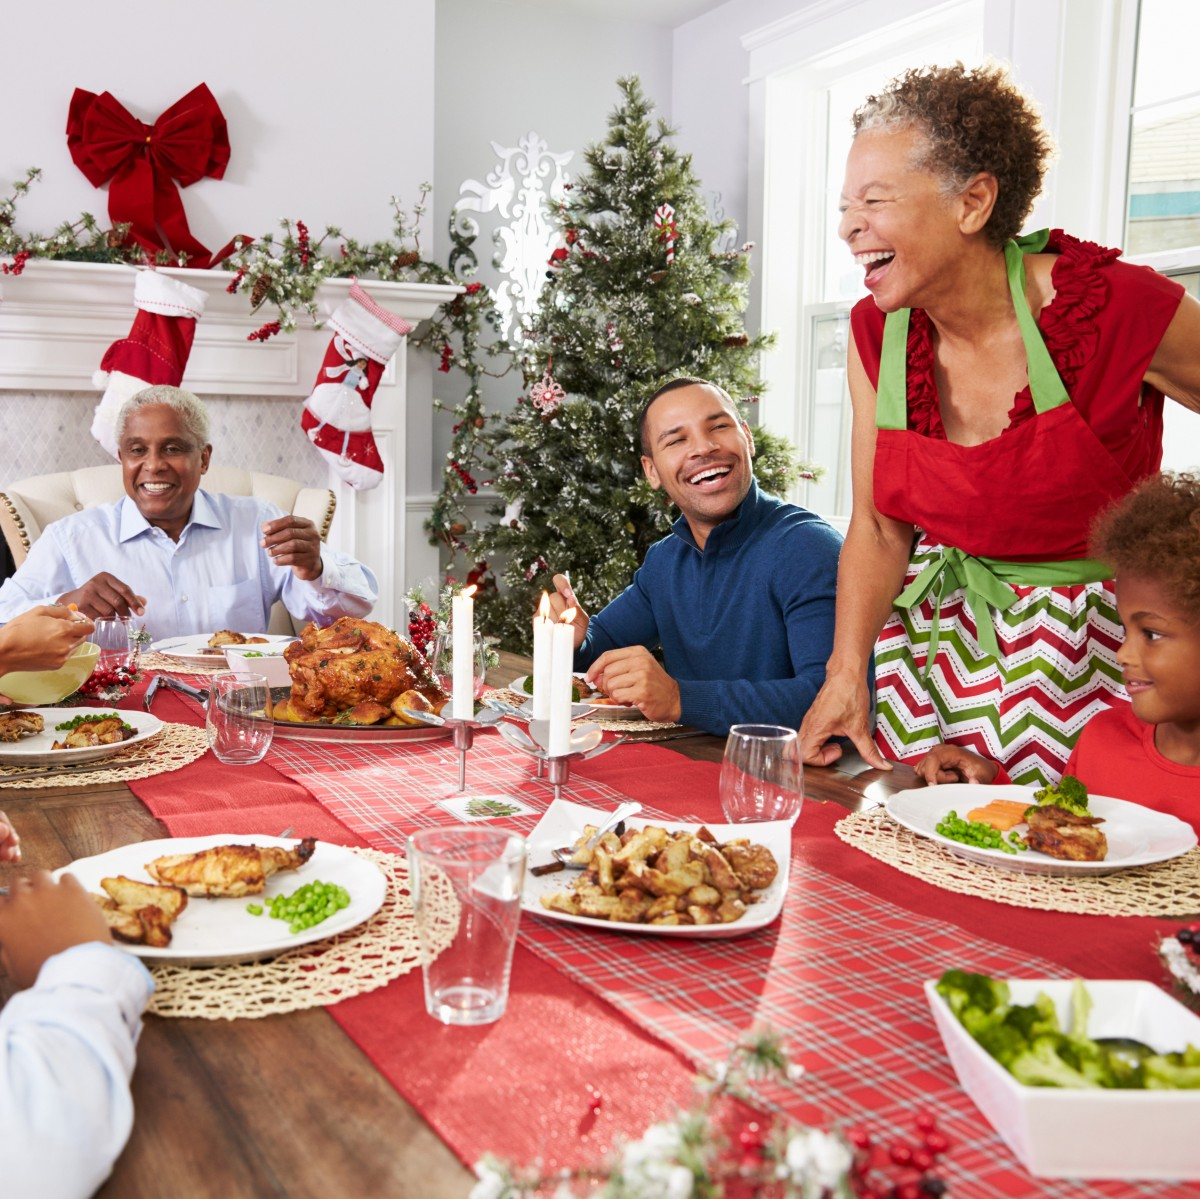 How You Can Make the Holidays Senior Friendly